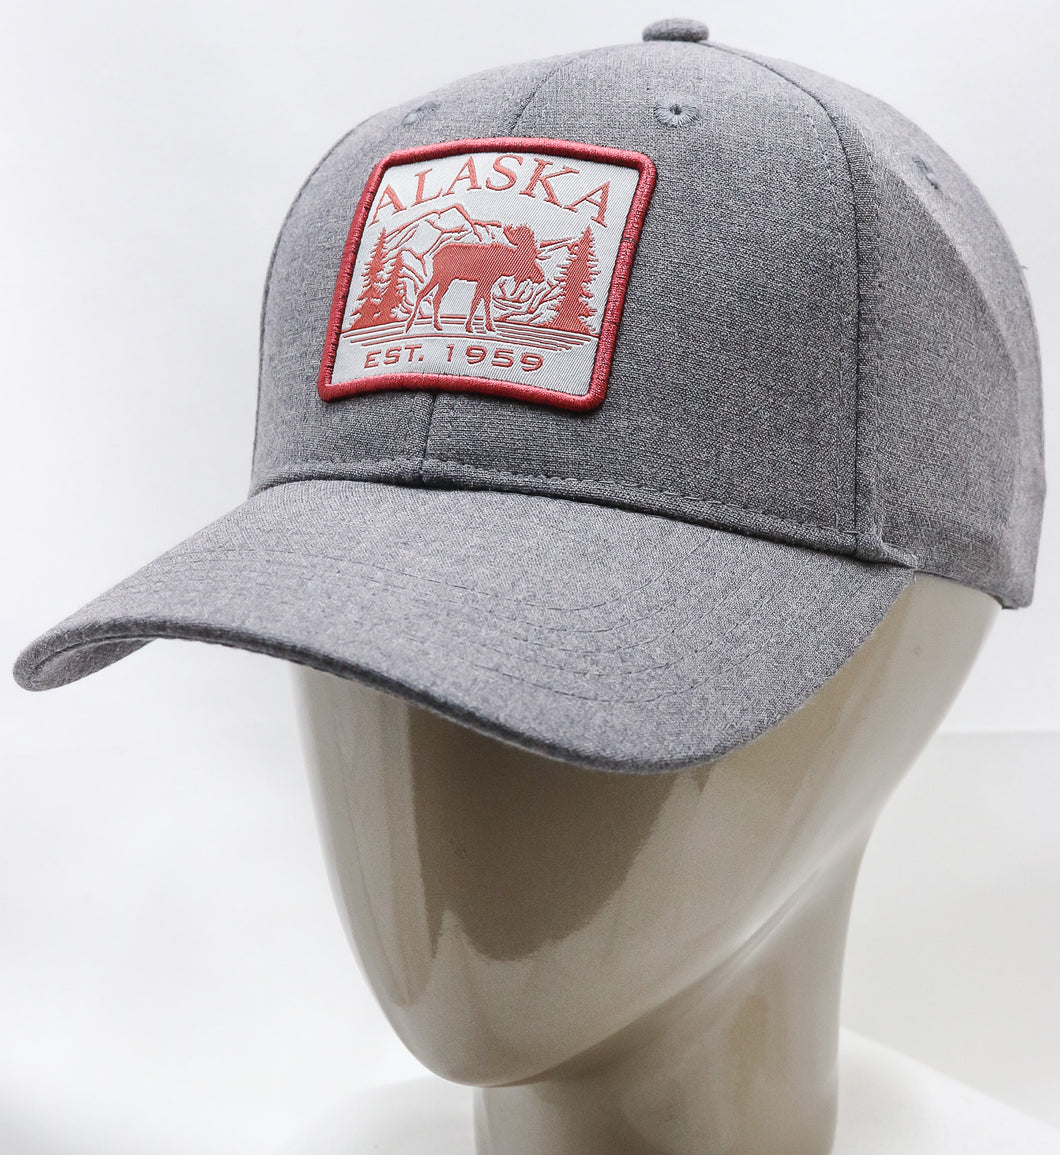 GREY SQUARE MOOSE ADJUSTABLE BASEBALL HAT